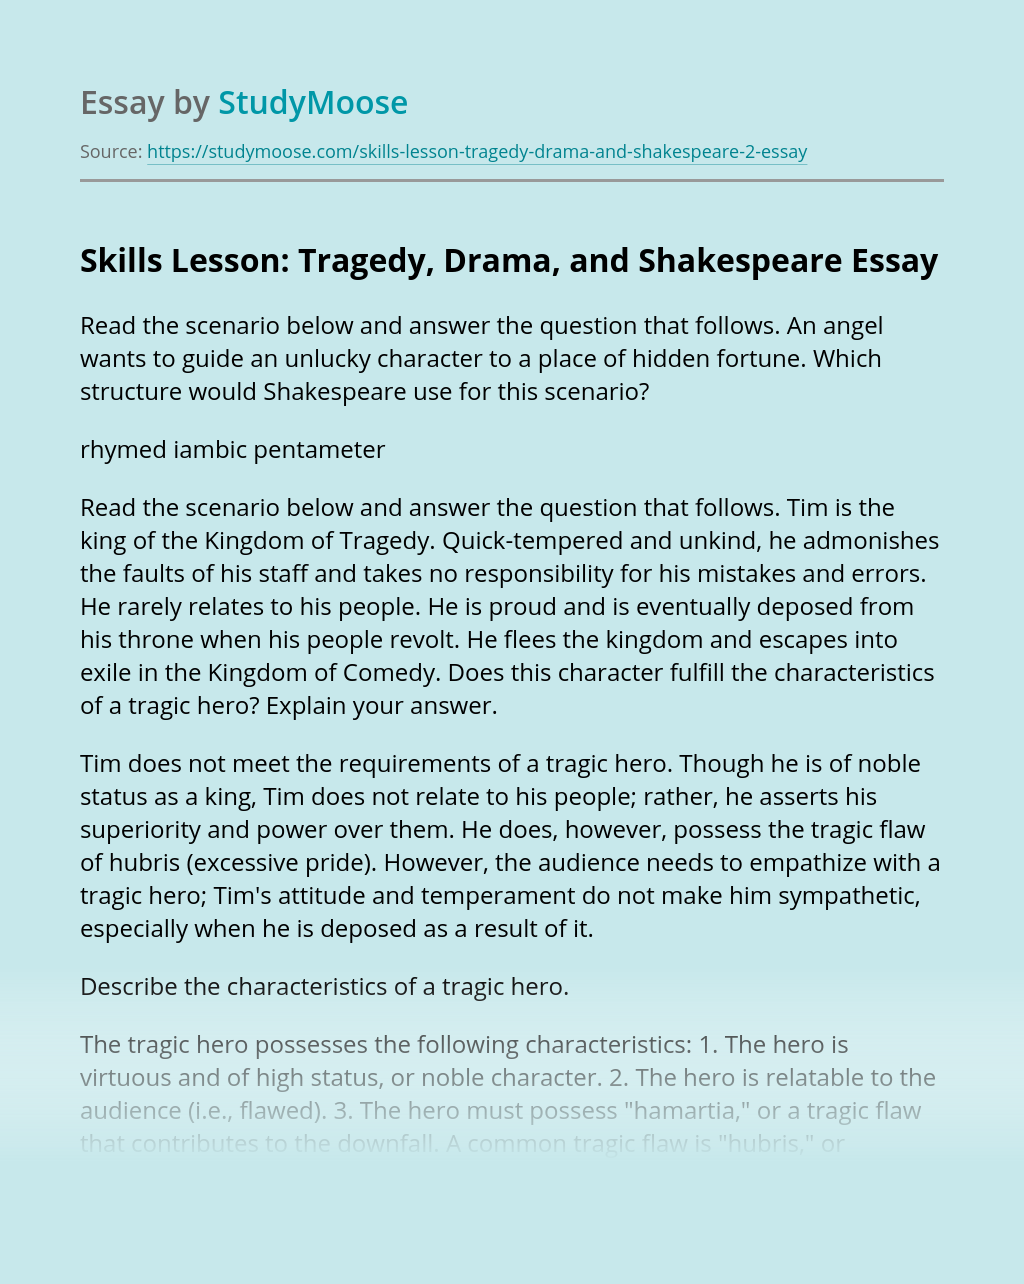 Skills Lesson: Tragedy, Drama, and Shakespeare